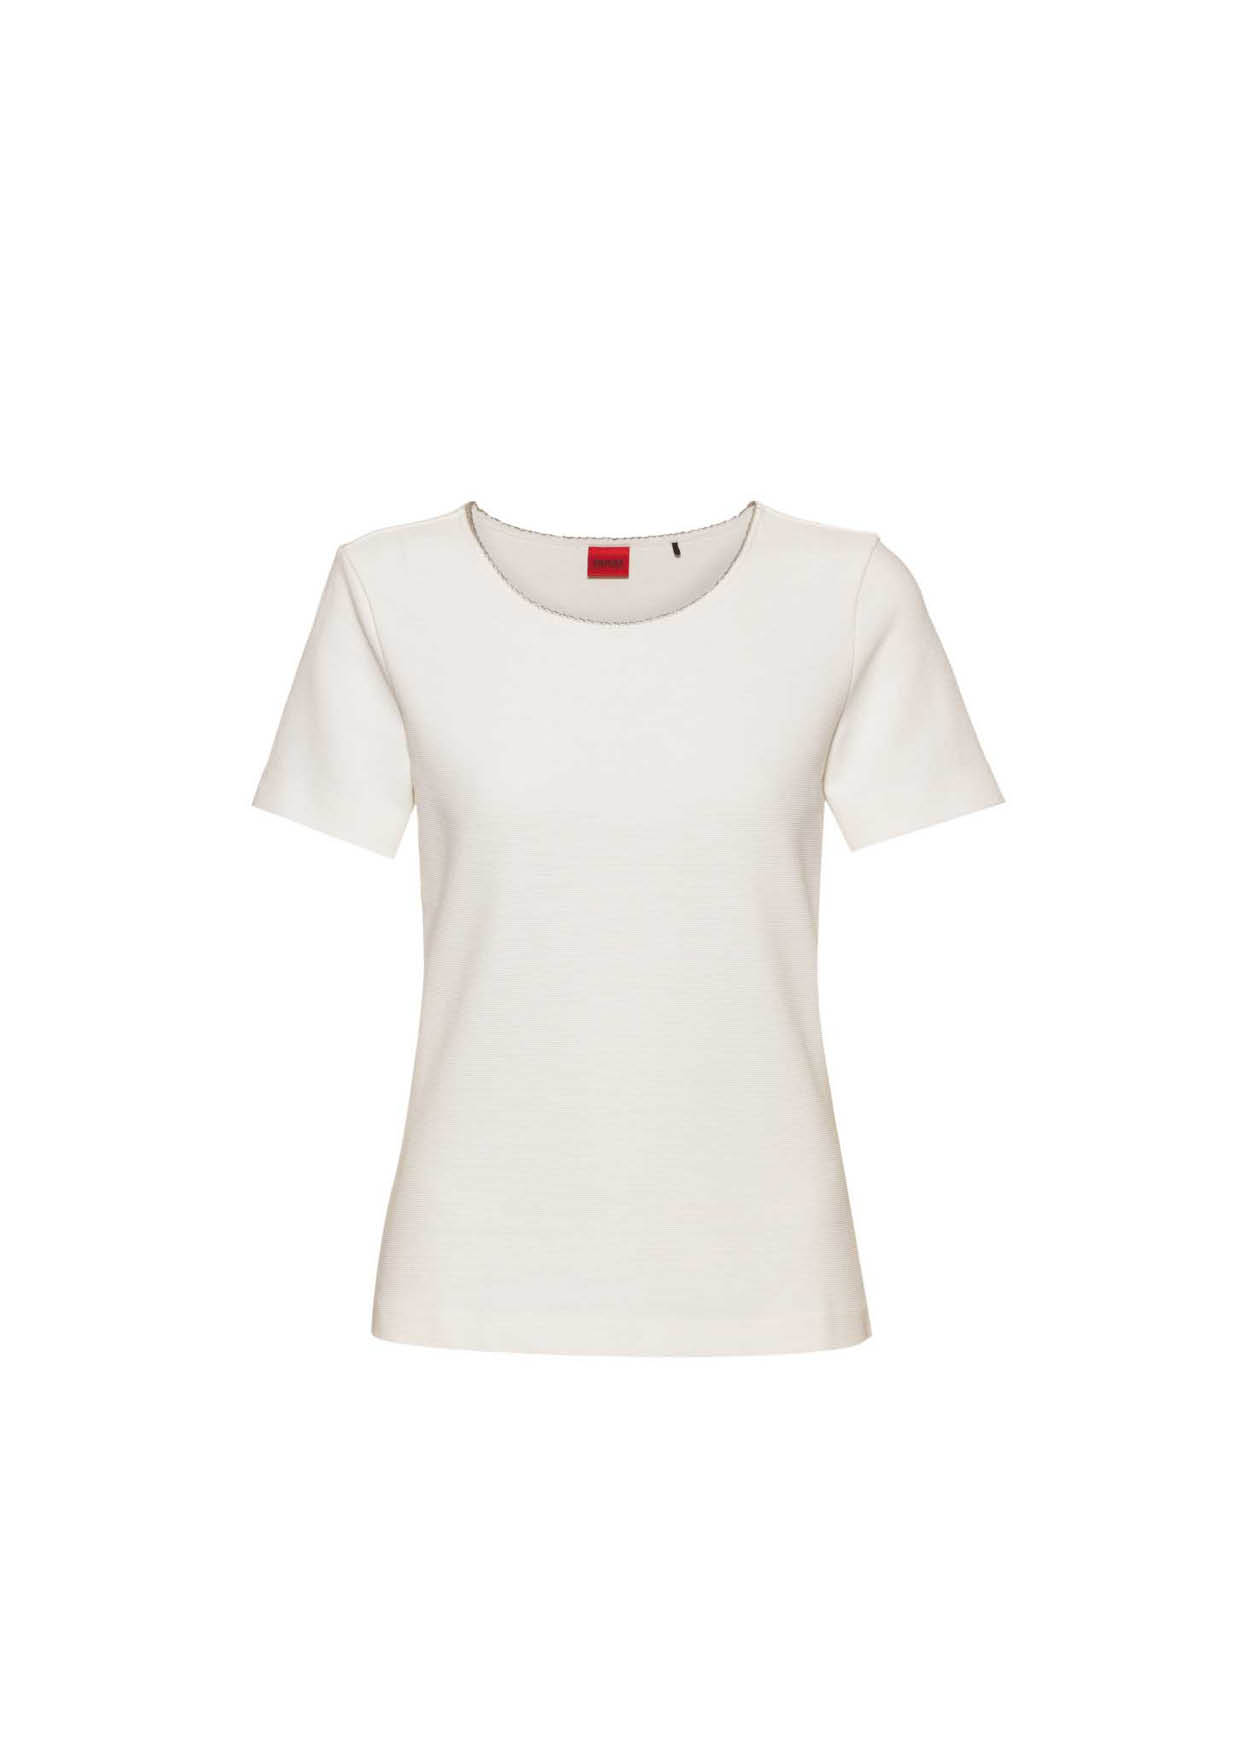 T-Shirt aus Stretch-Jersey mit Metallbesatz Natural